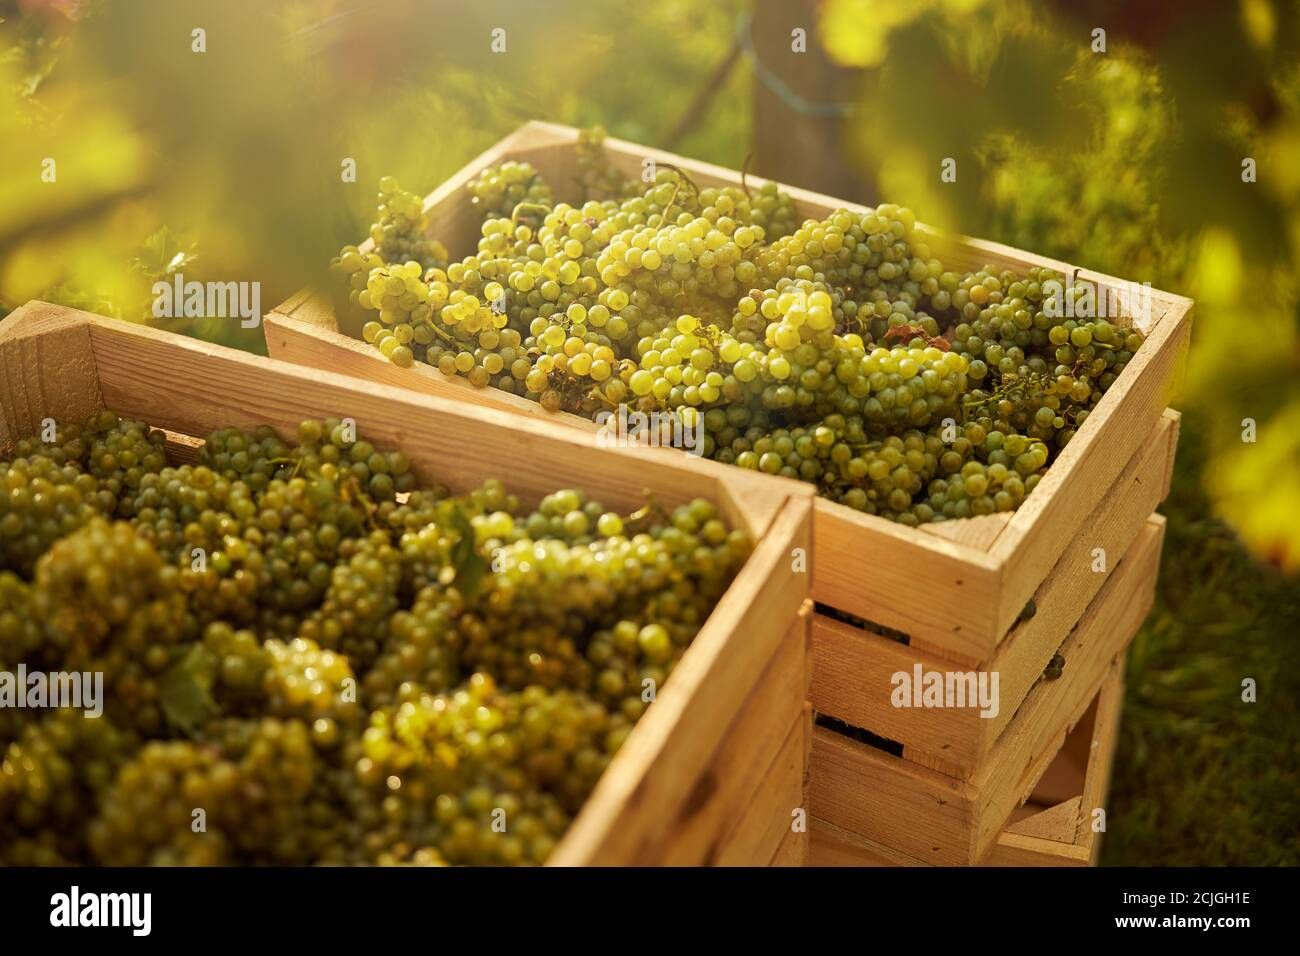 Freshly-picked ripe white grapes in wooden boxes Stock Photo